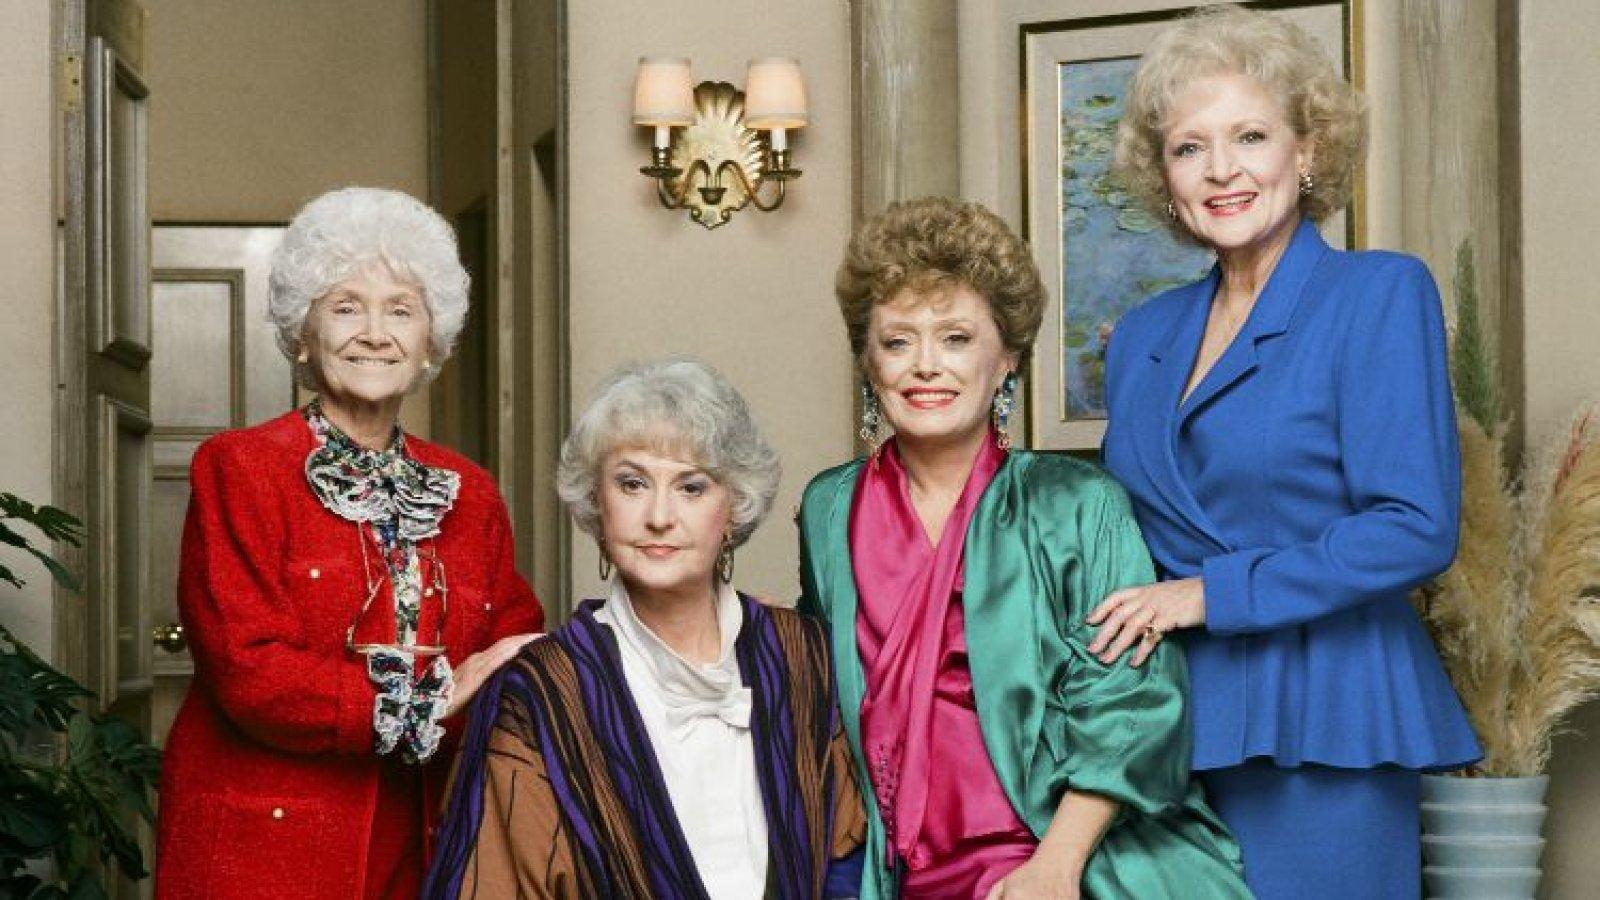 6 Things Every Fan of The Golden Girls Should Own